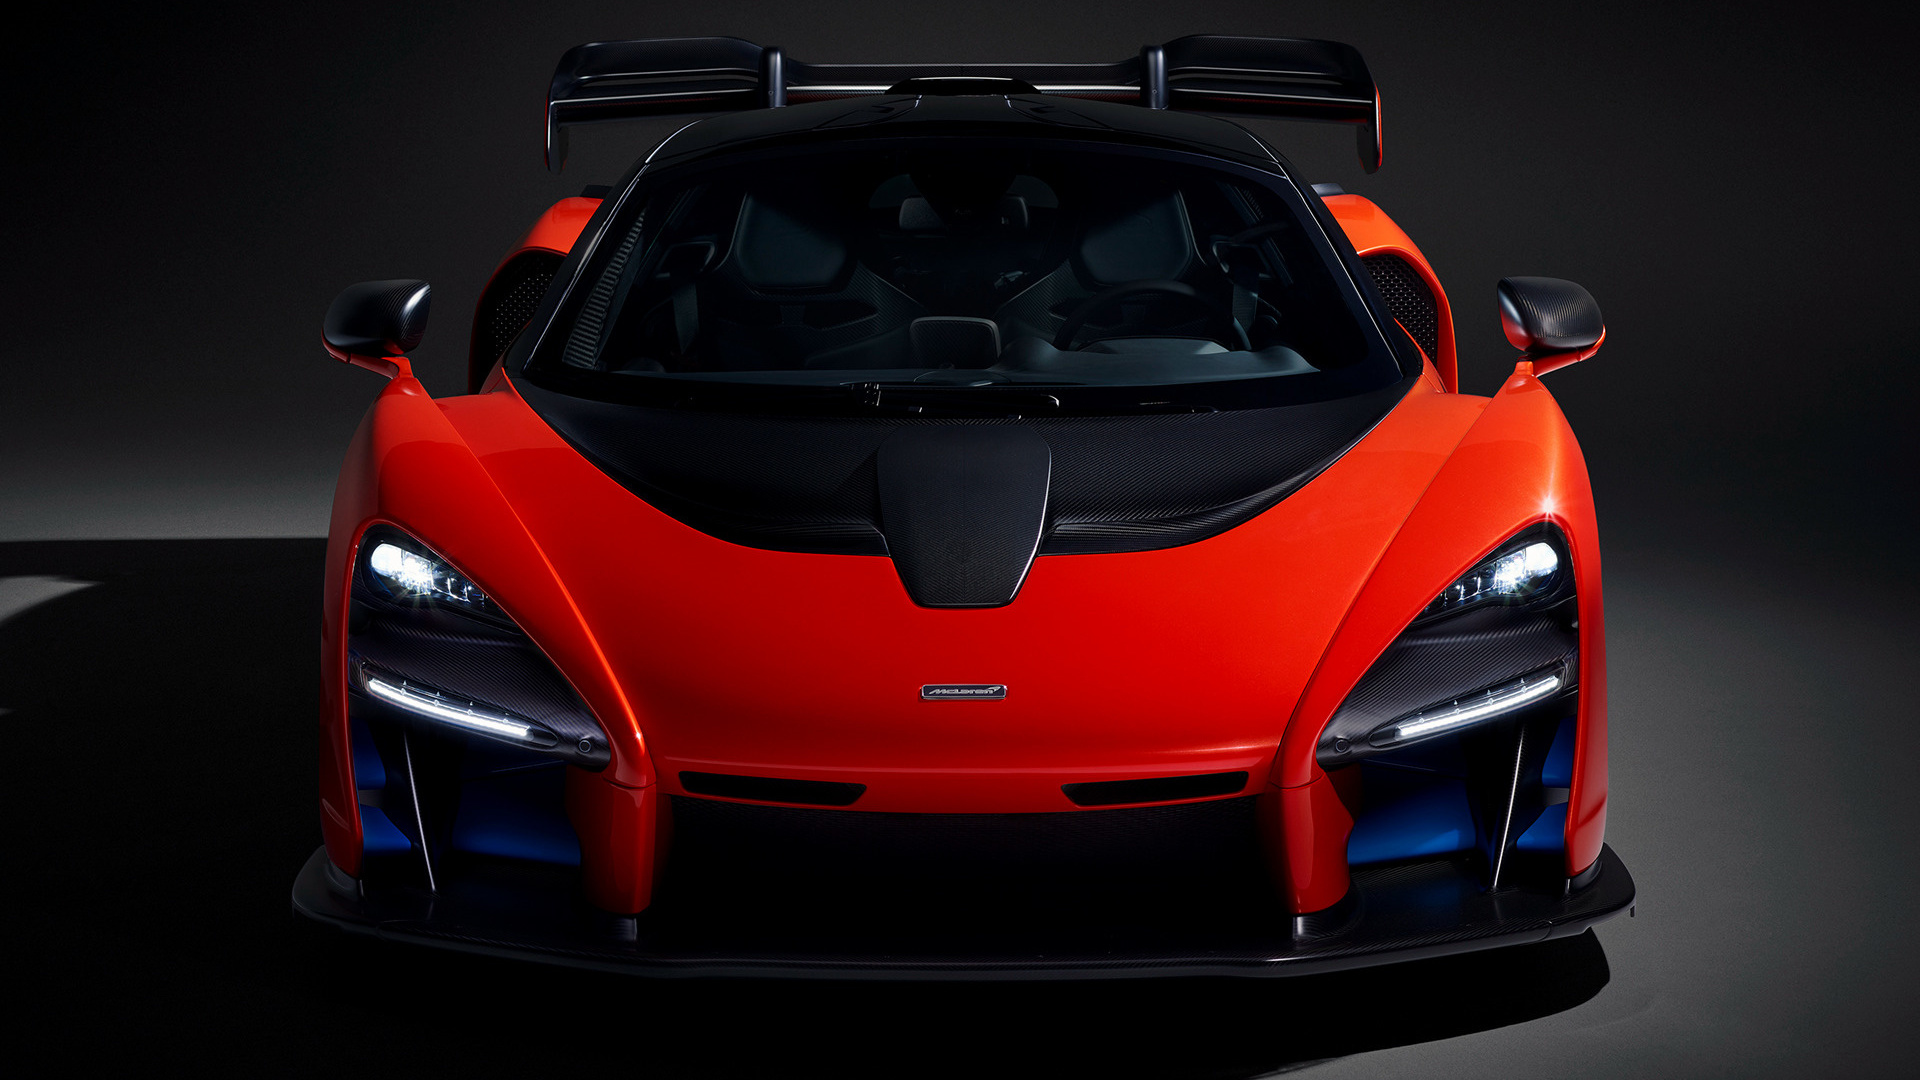 Bmw Car Hd Wallpaper 2018 Mclaren Senna Wallpapers And Hd Images Car Pixel